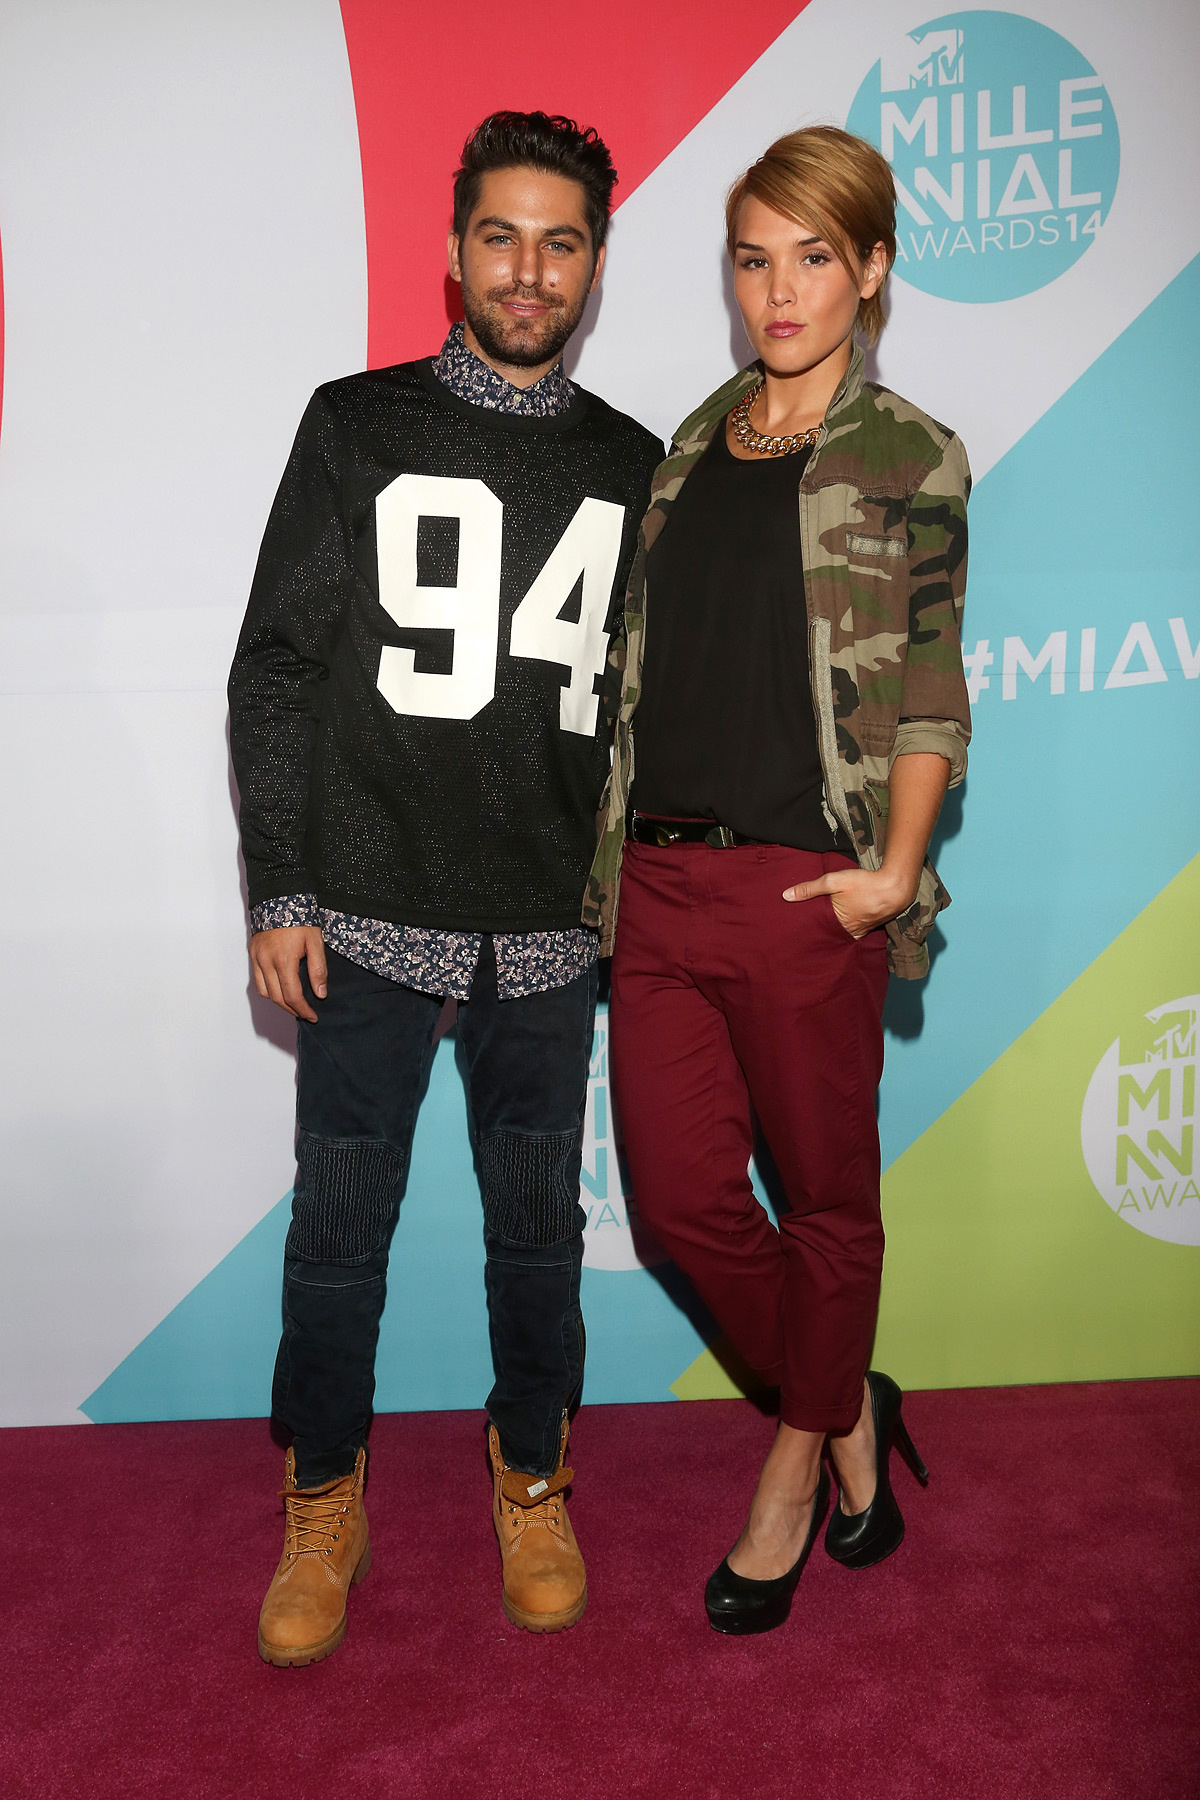 mtv_millennial_awards_2014_322786404_1200x1800